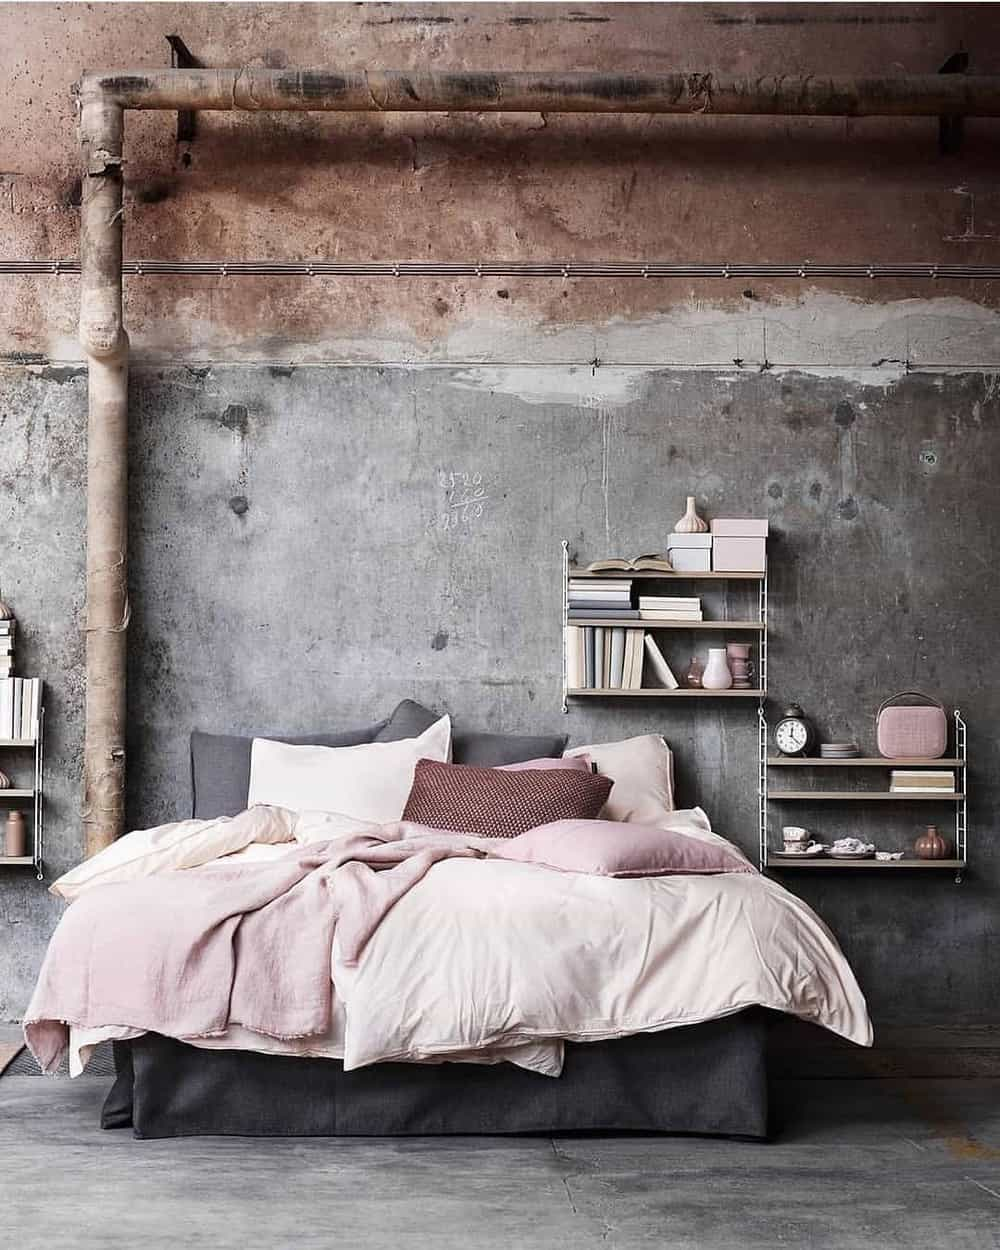 65 Amazing Small Bedroom Ideas to Create Space - The Sleek Look with Two Different Style